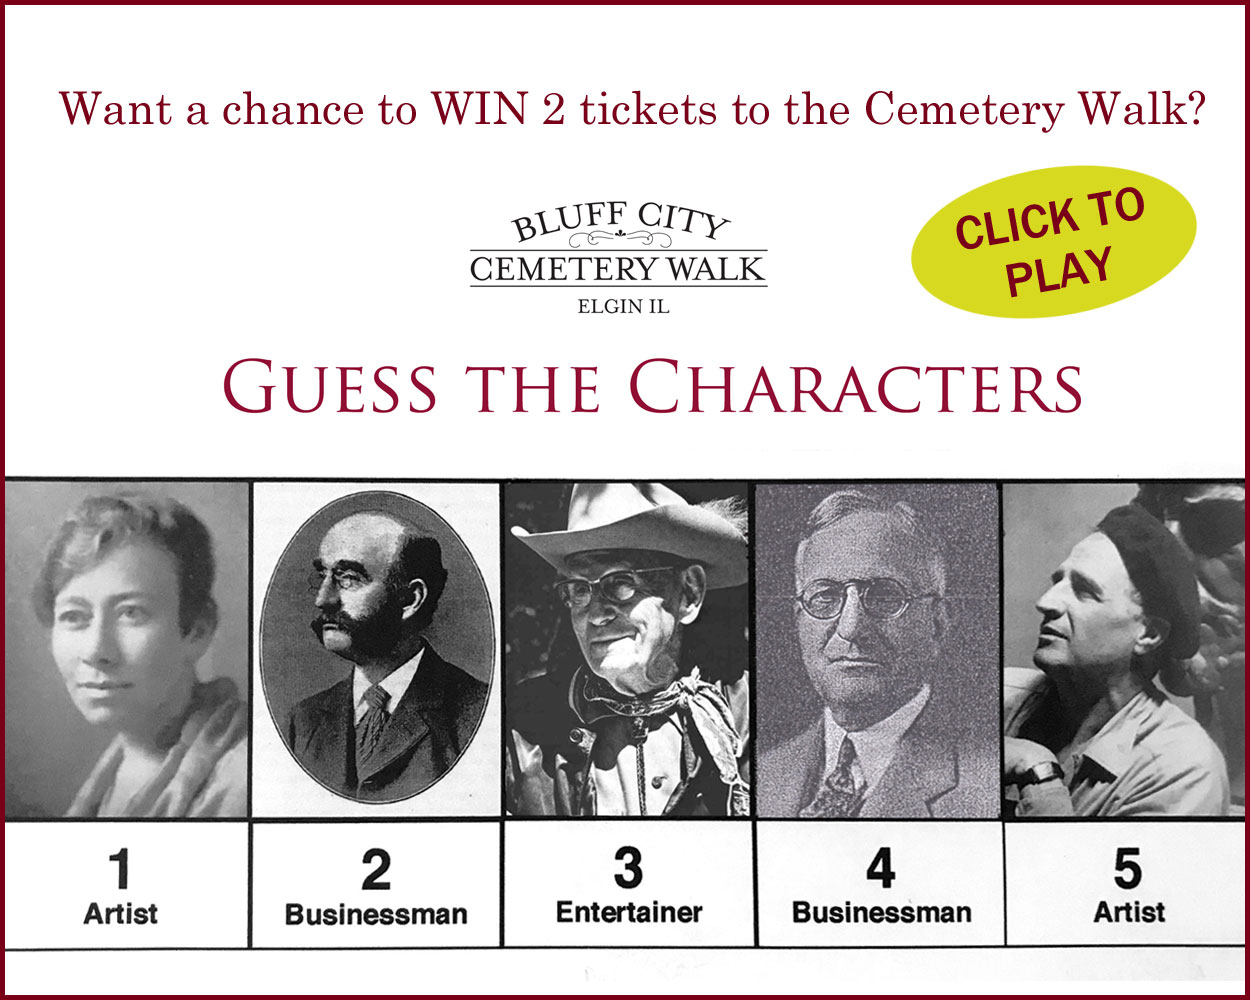 Win tickets to the Cemetery Walk